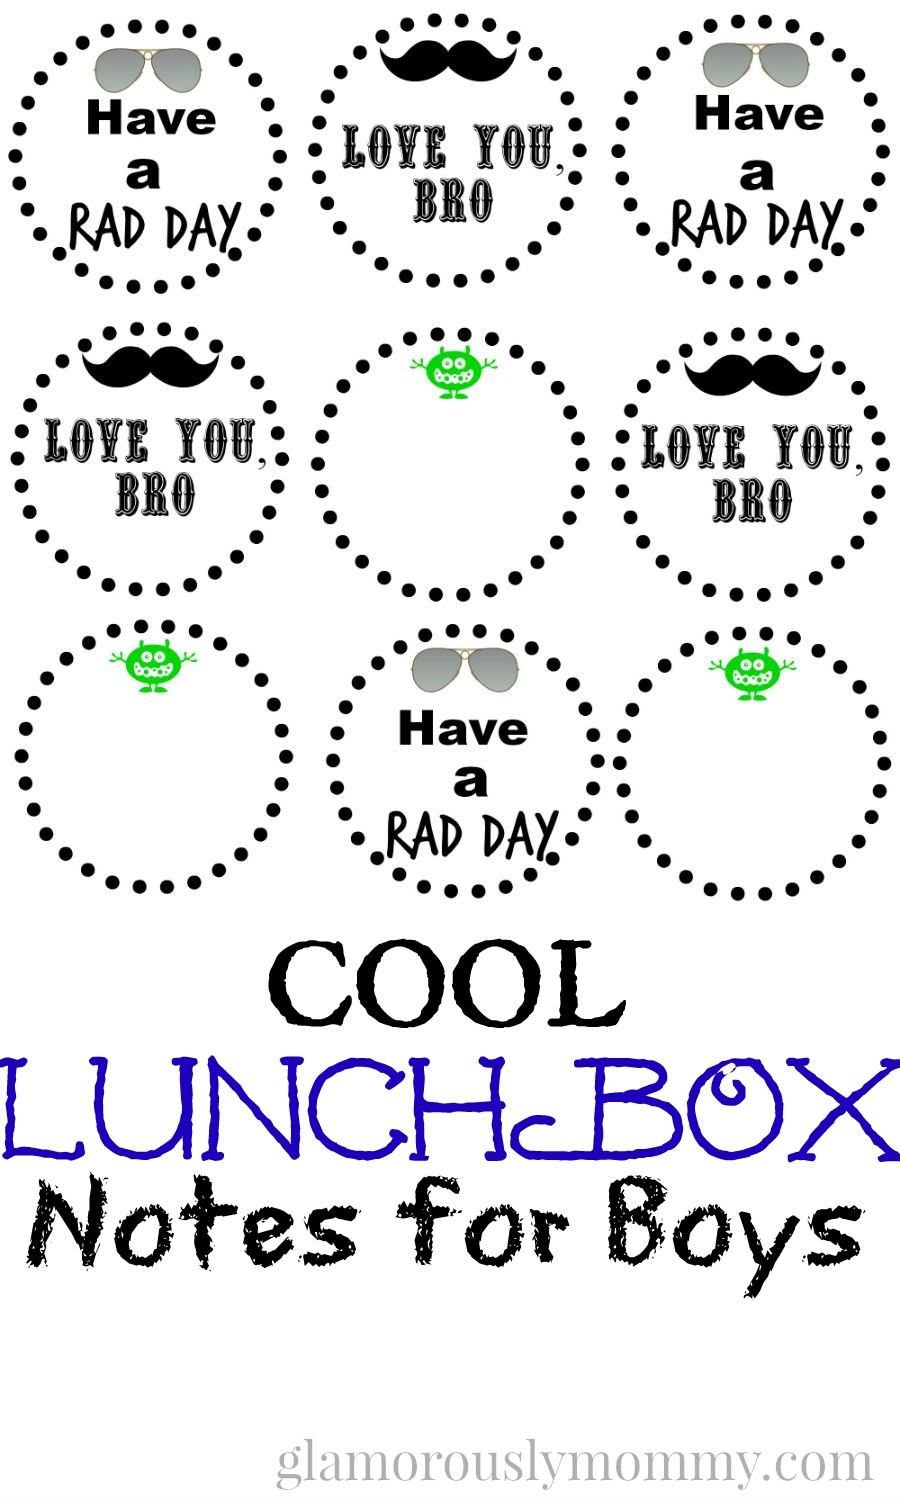 lunchbox notes for boys